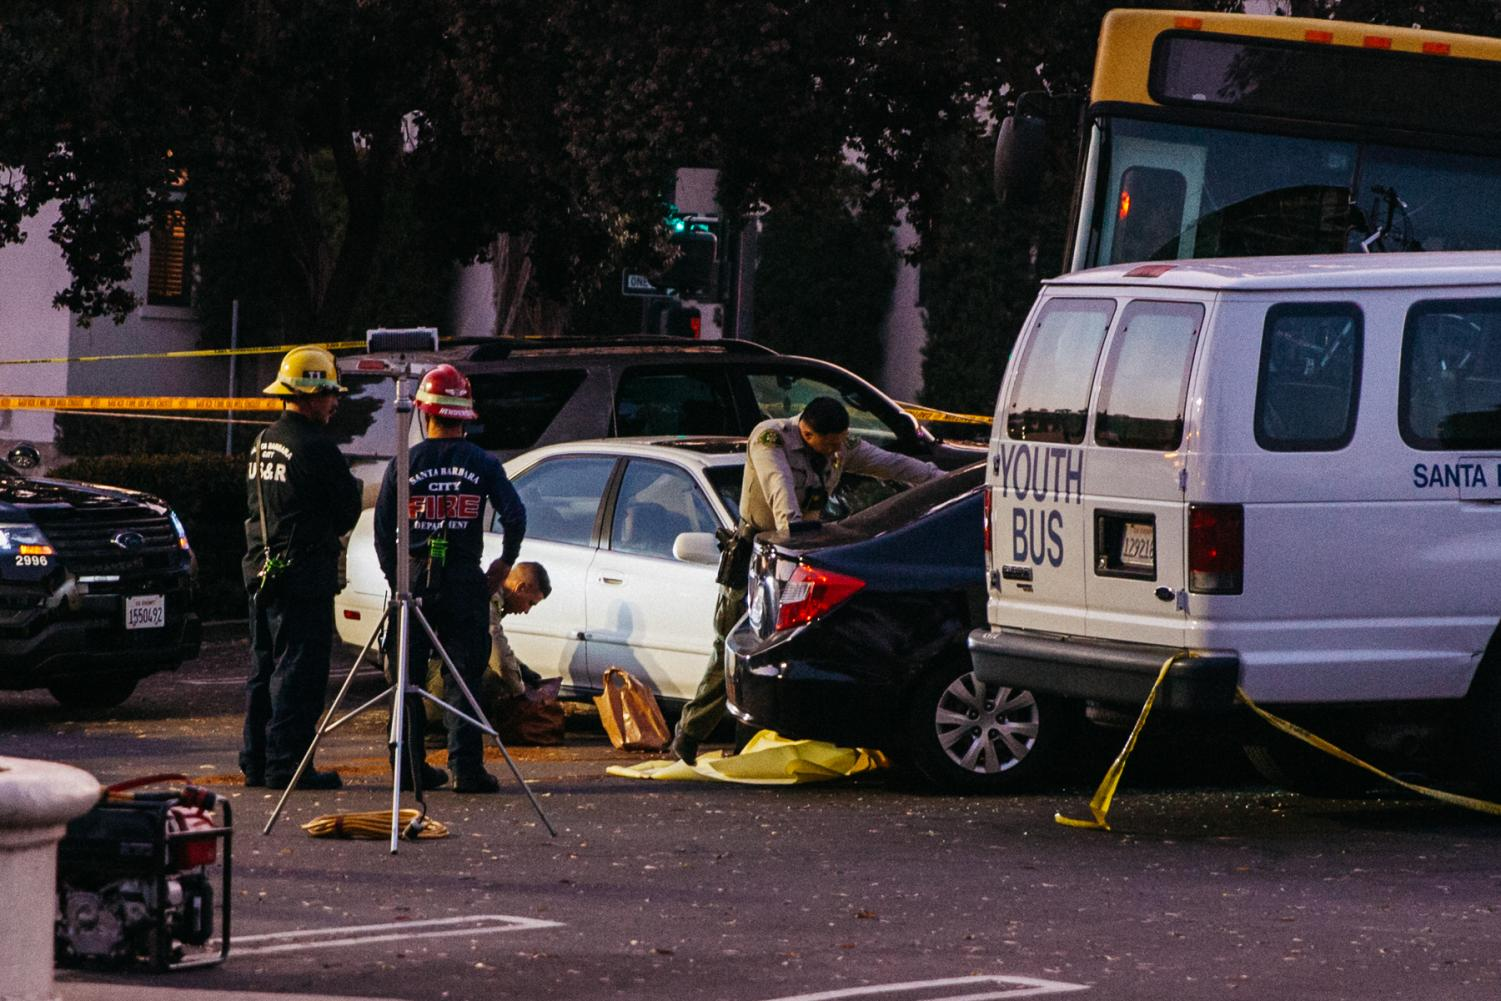 Santa Barbara Authorities and first responders prepare to remove the covered body of the woman killed by MTD bus 907 on Wednesday, Oct. 9, 2019, on Chapala and West Figueroa Street in Downtown Santa Barbara, Calif.